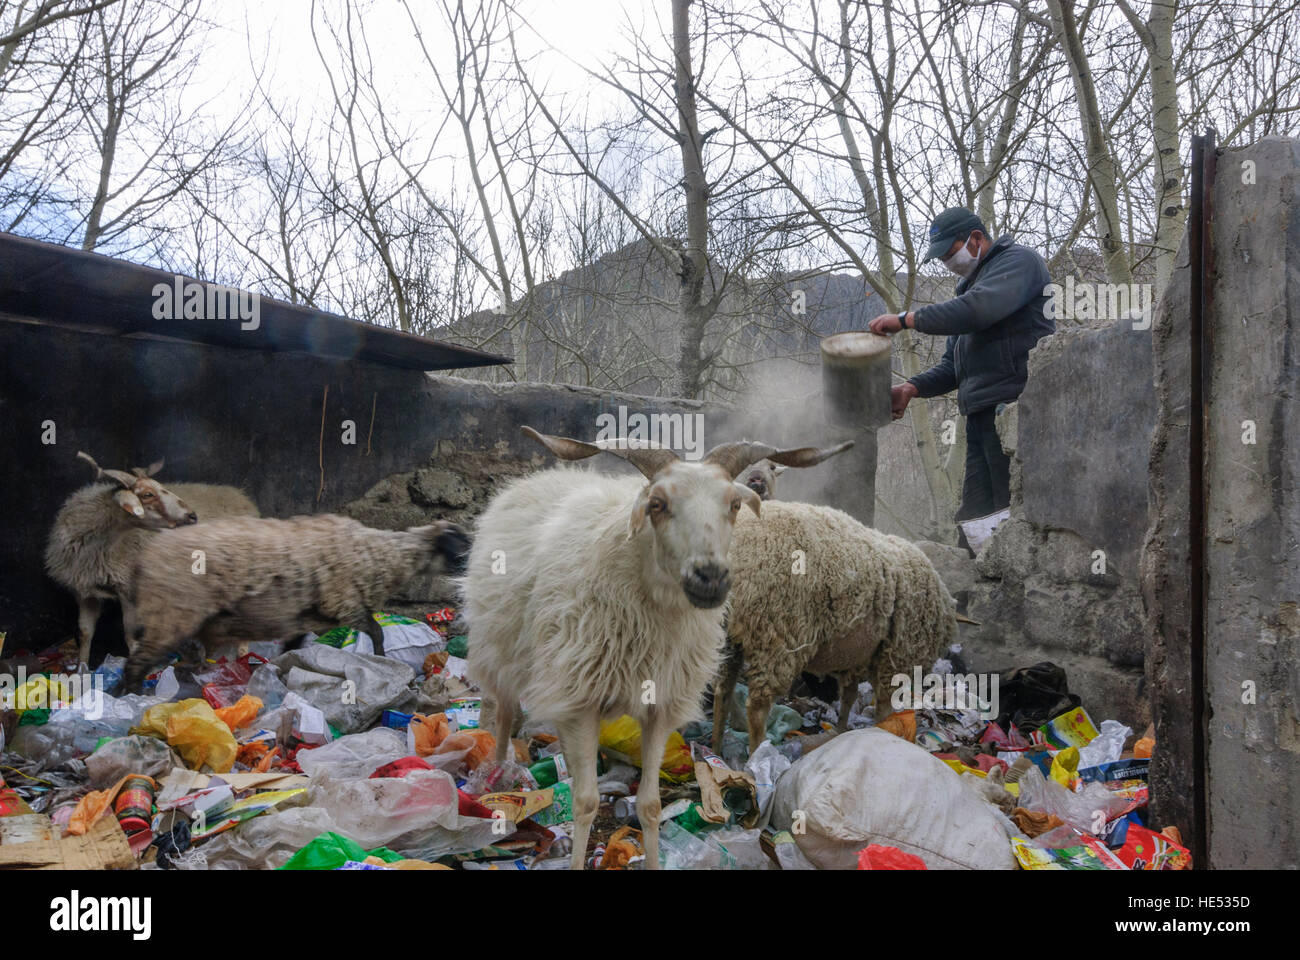 Lhasa: Sheep on a search for food in a garbage site, Tibet, China - Stock Image